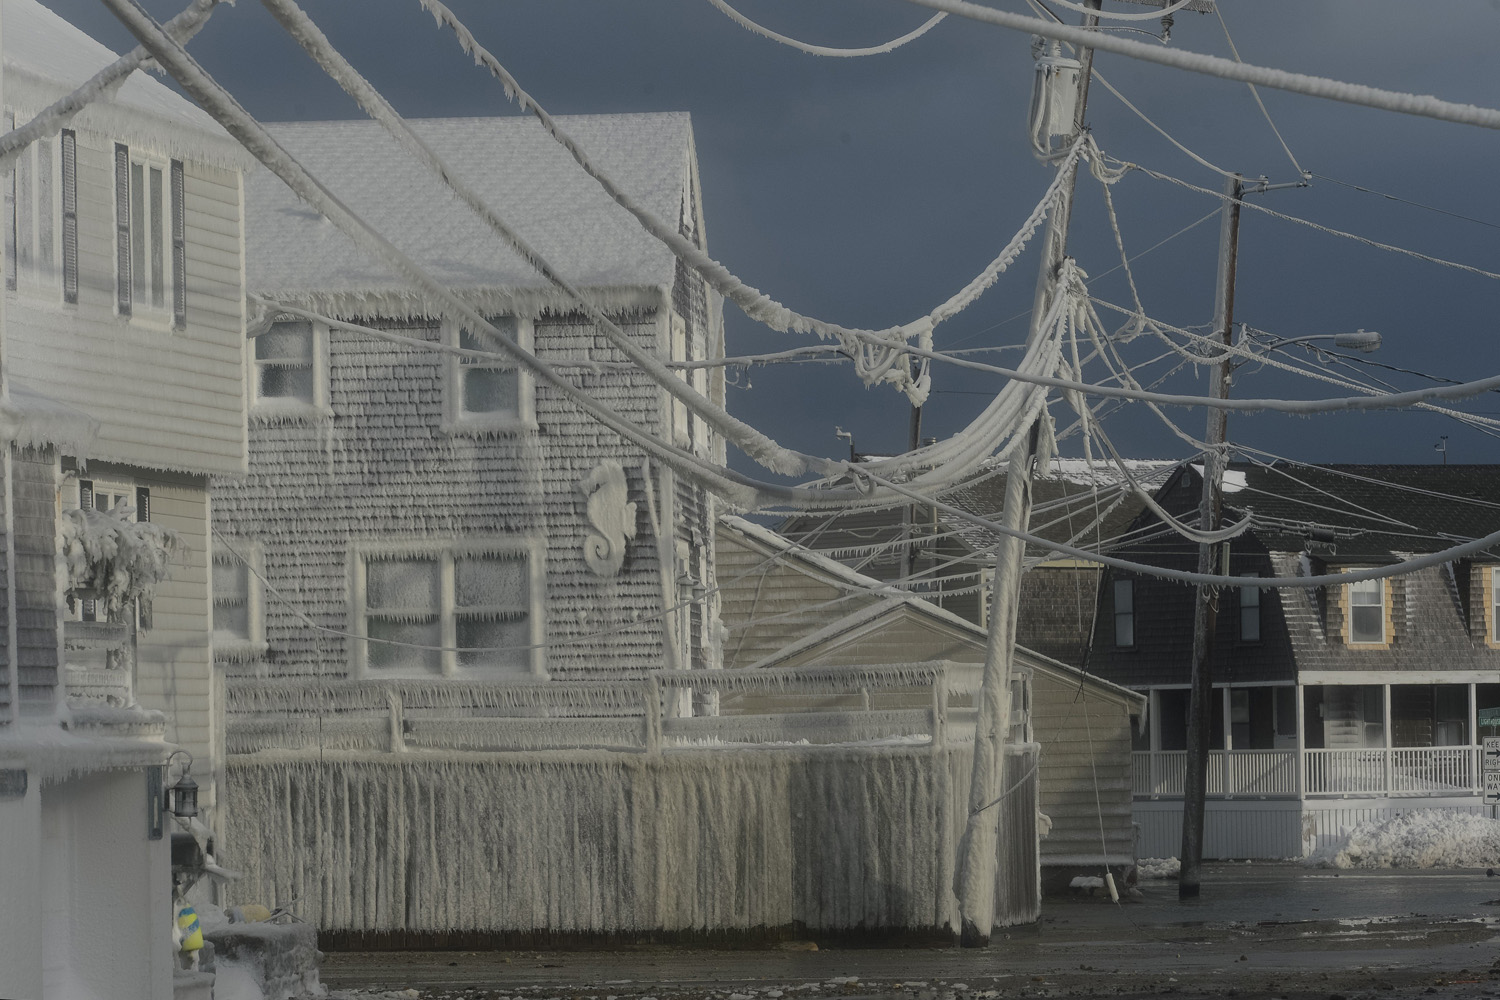 Jan. 3, 2014. Water runs down the flooded streets as homes and power lines are covered in ice from the ocean spray during the a Nor'easter winter storm in Scituate, MA.